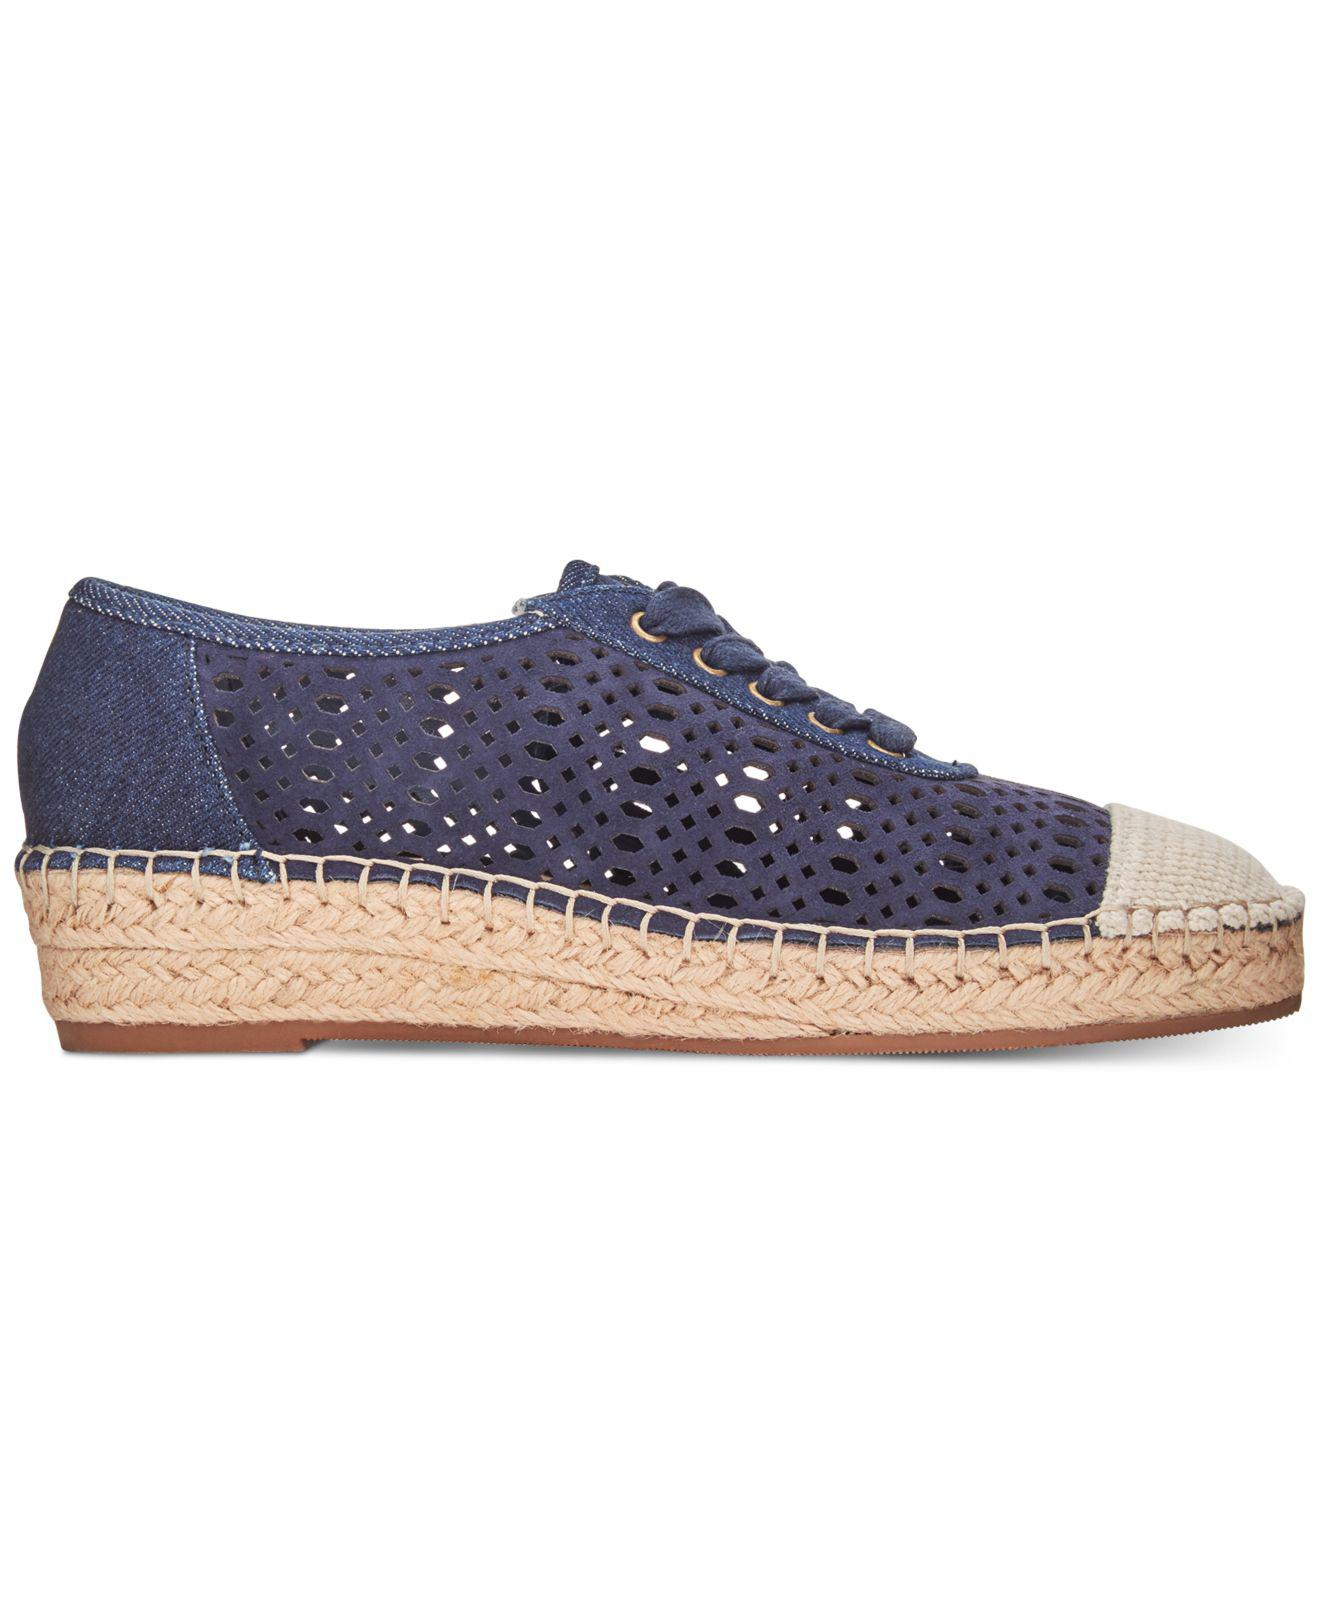 47384d39de6d Gallery. Previously sold at  Macy s · Women s Lace Up ...